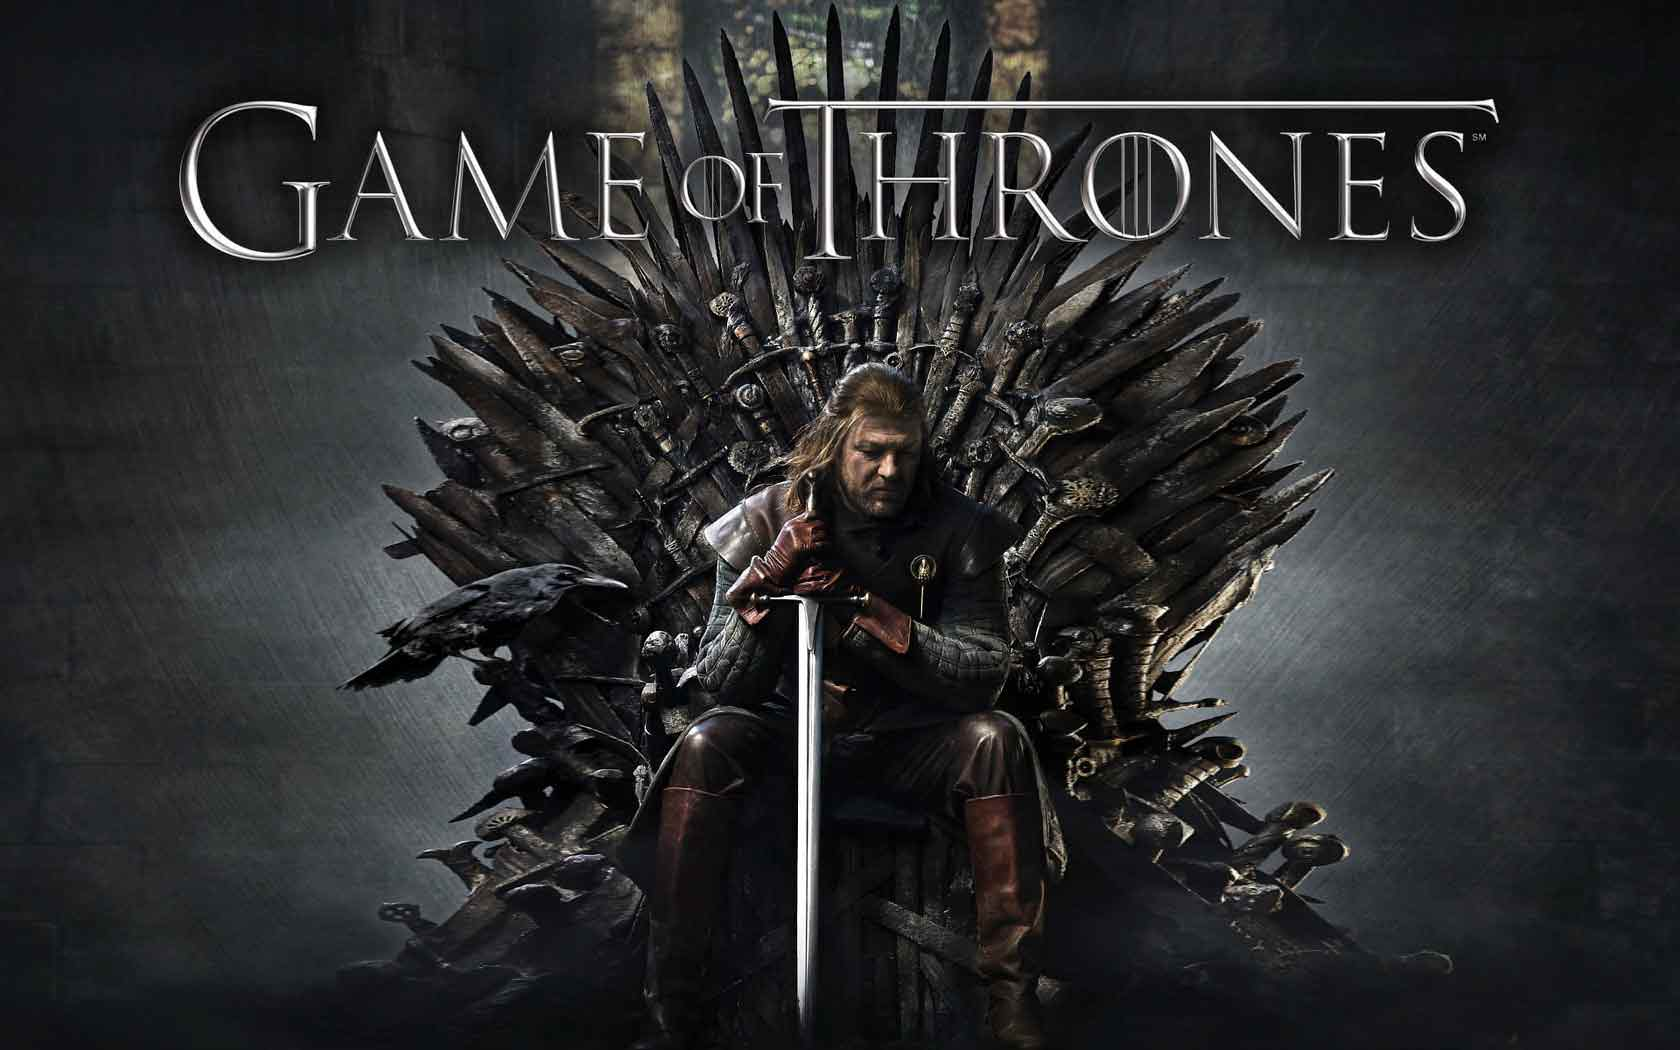 Game of thrones hintergrund handy